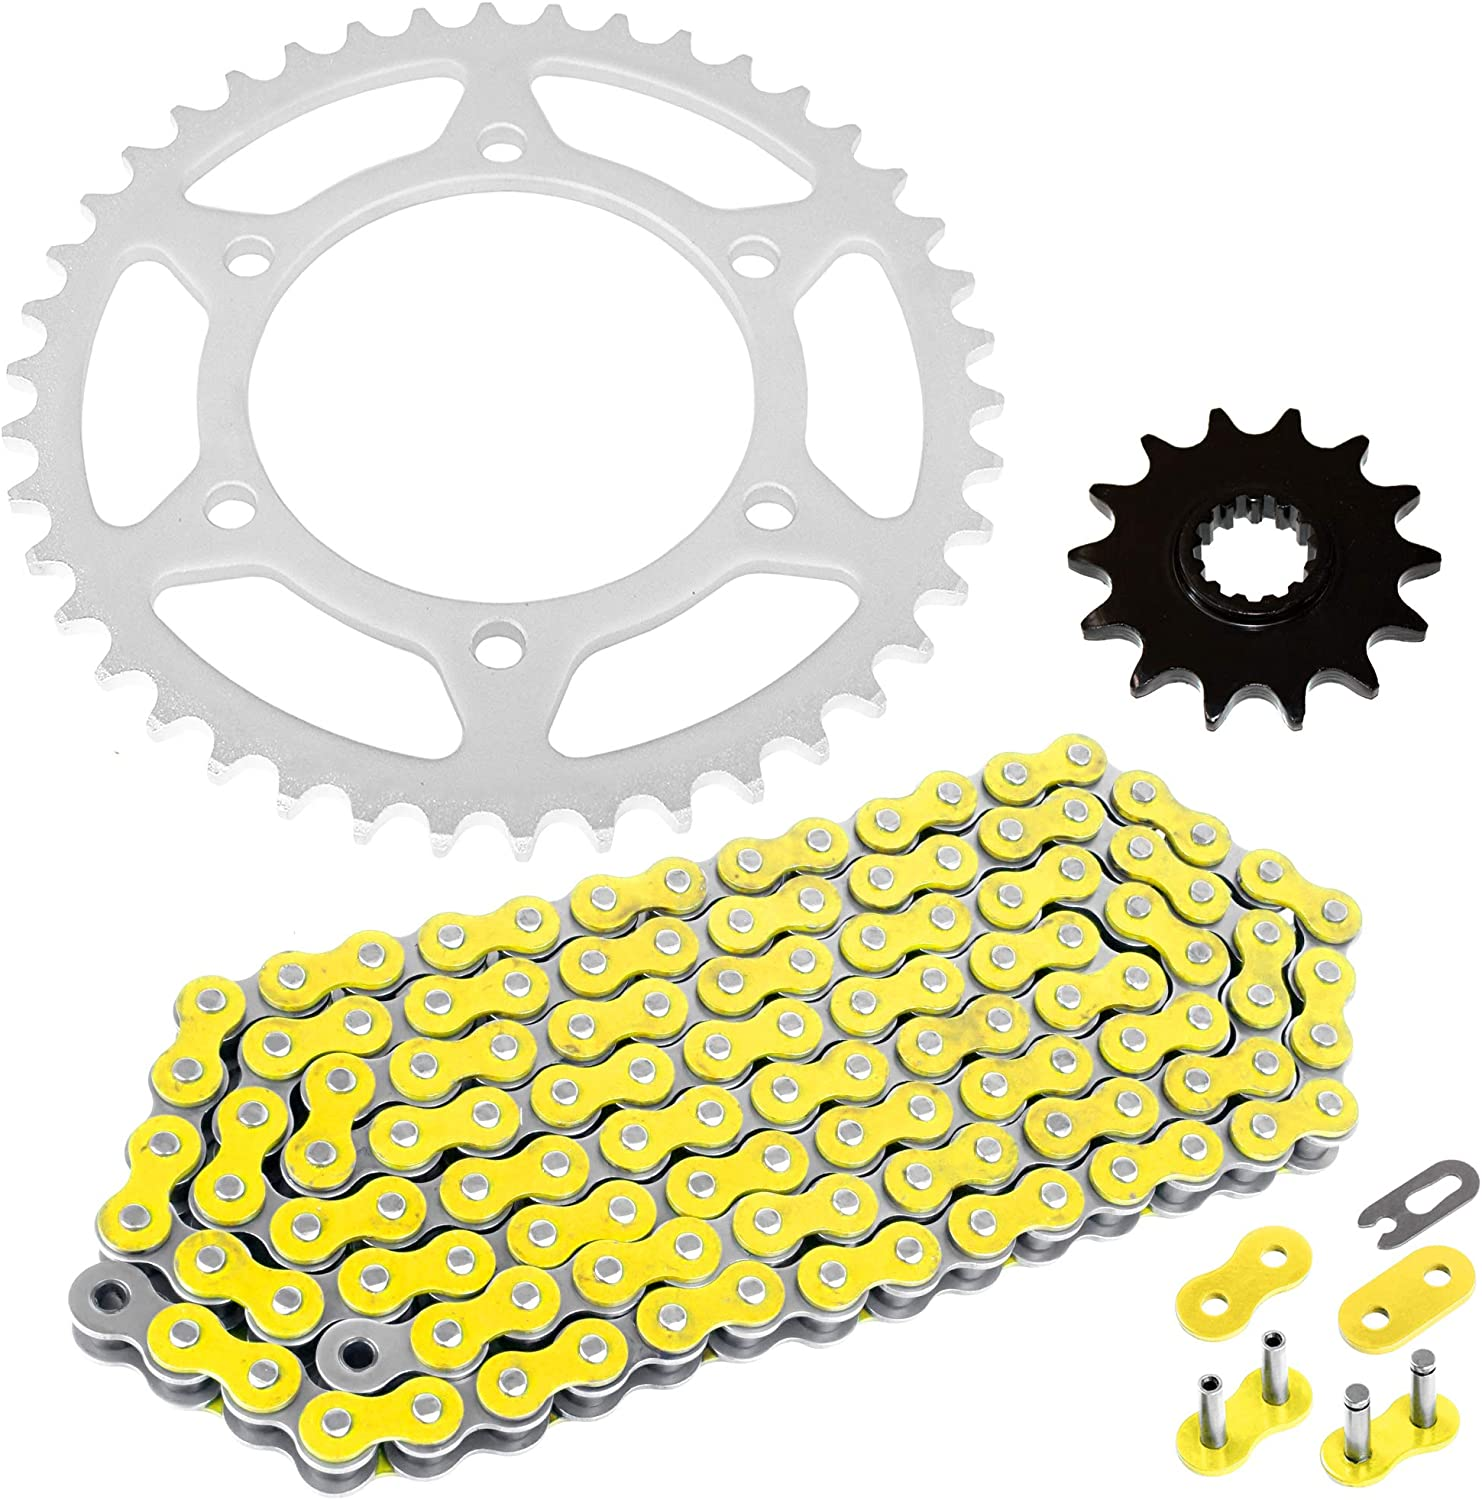 Caltric Drive Chain service and Sprockets Kawasaki Max 57% OFF E Compatible with Kit